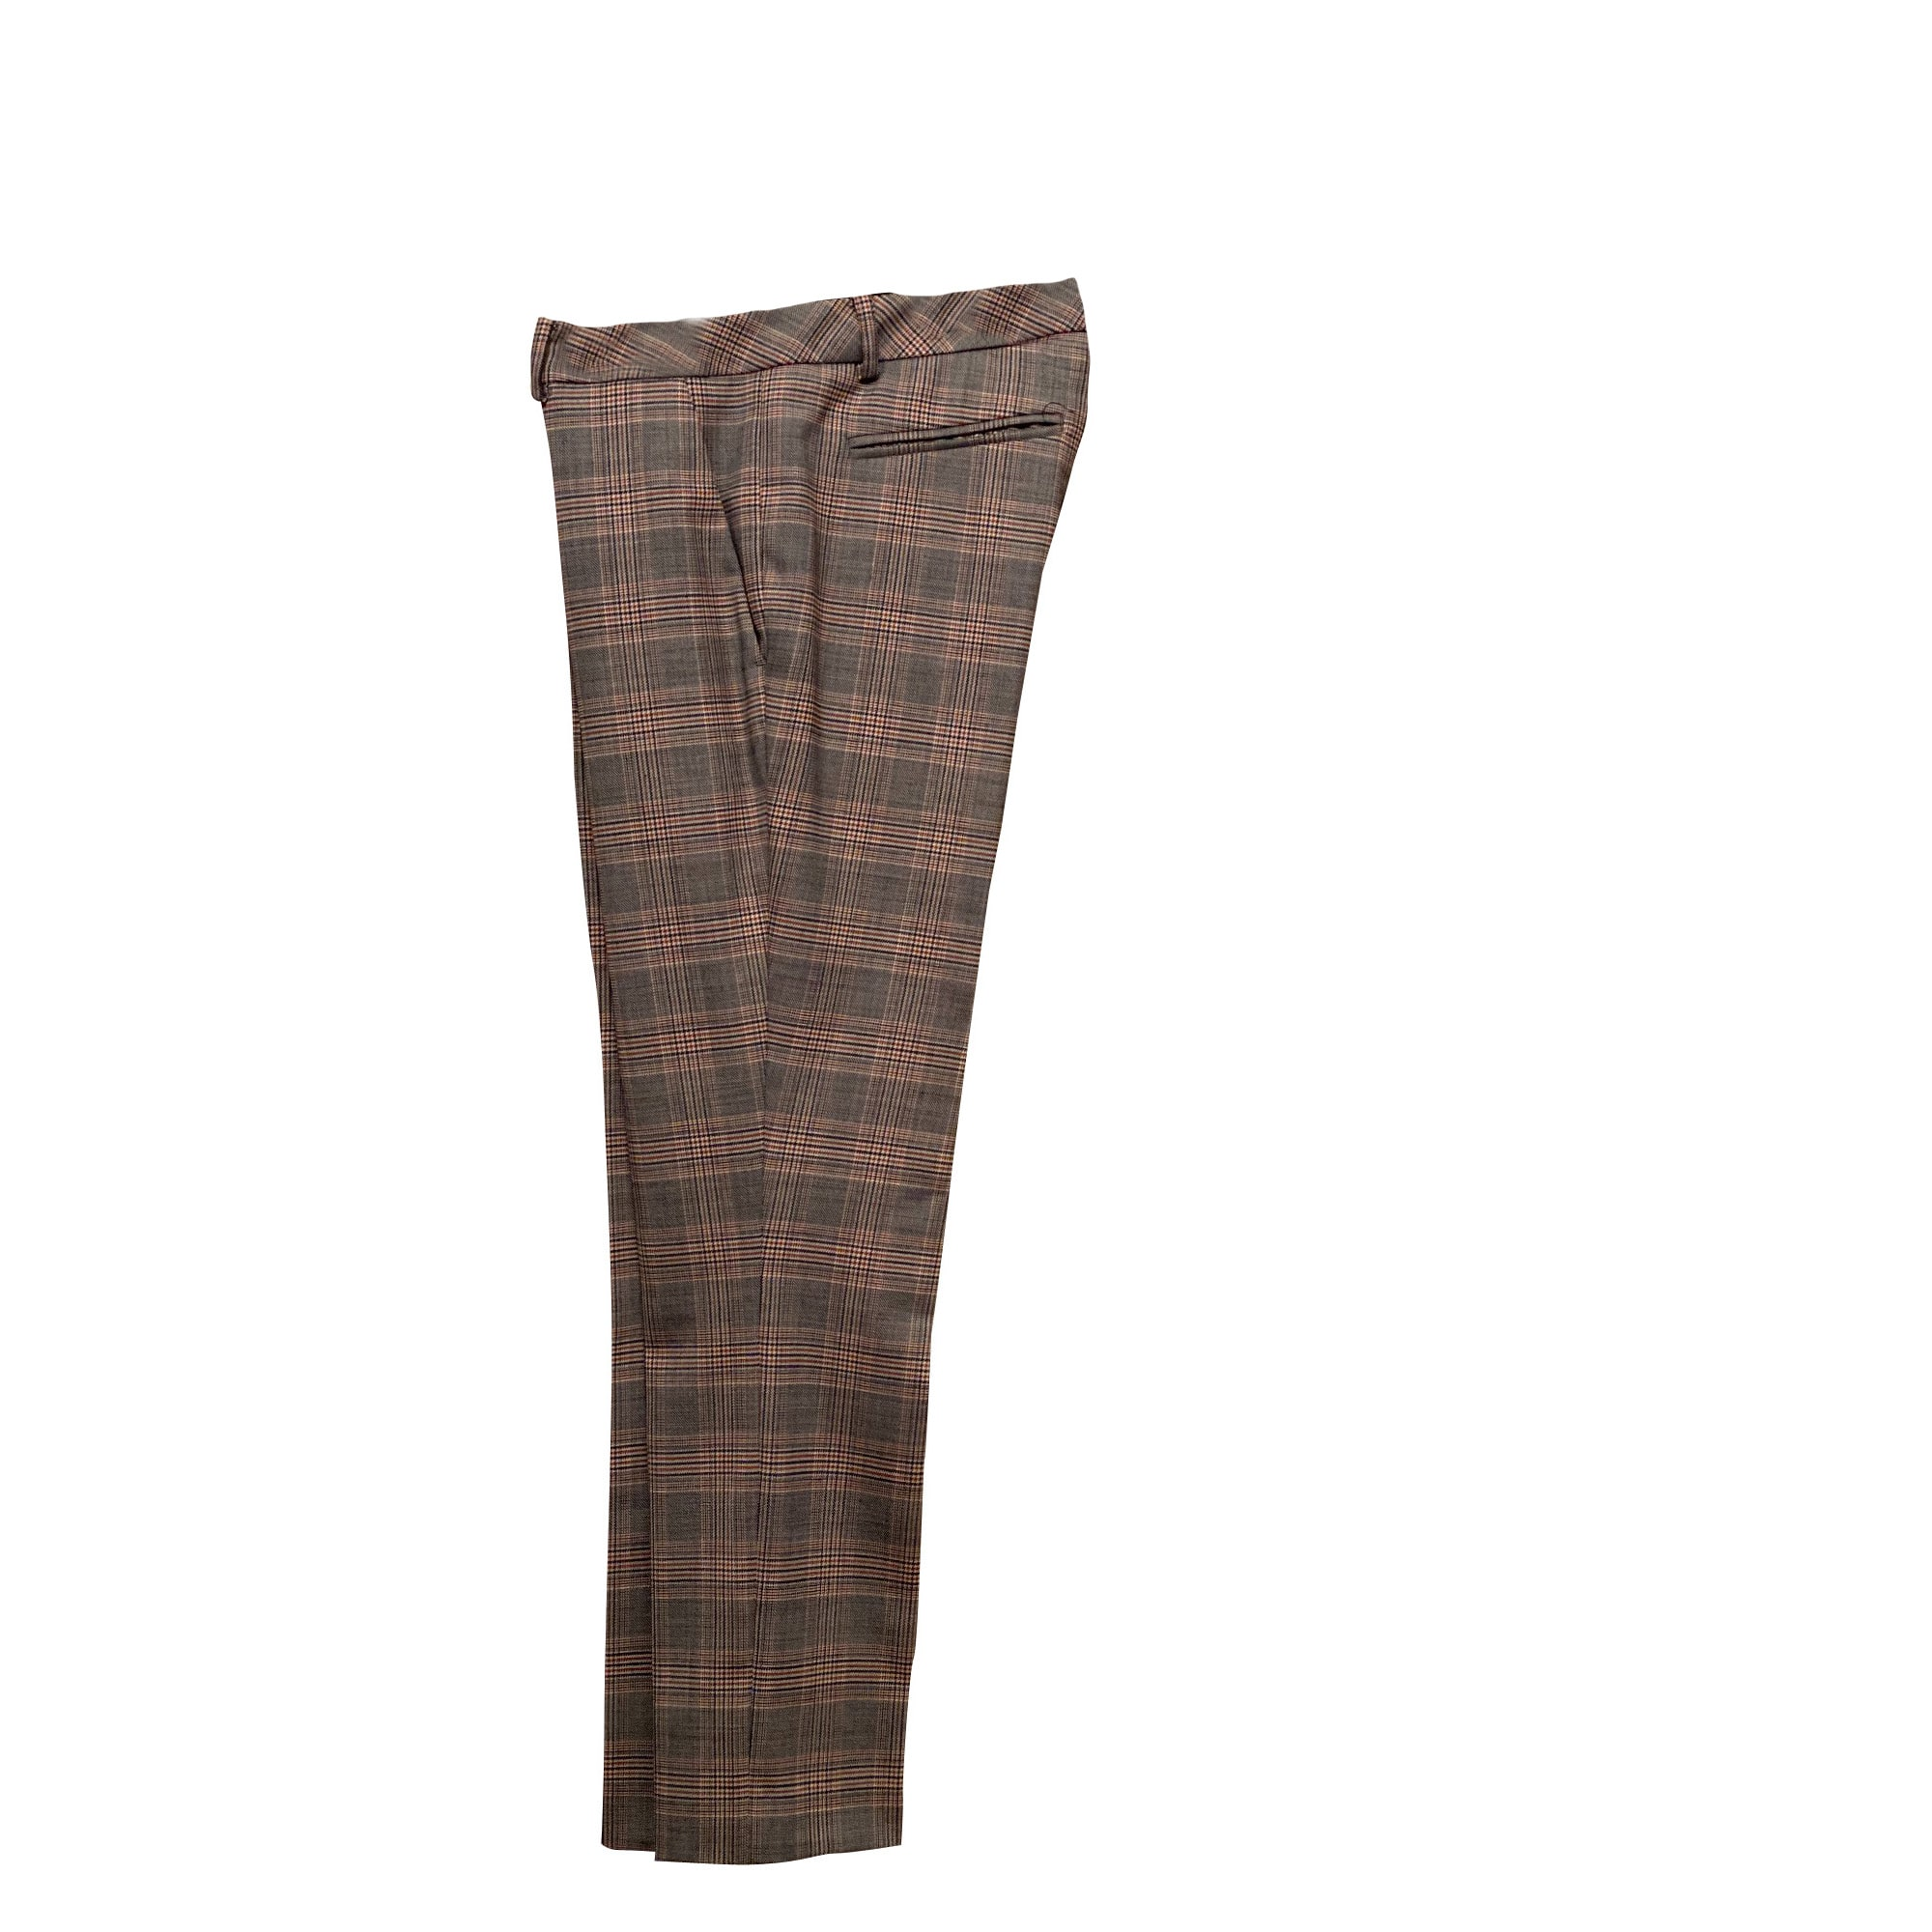 Pantalon slim, cigarette BA&SH Gris, anthracite